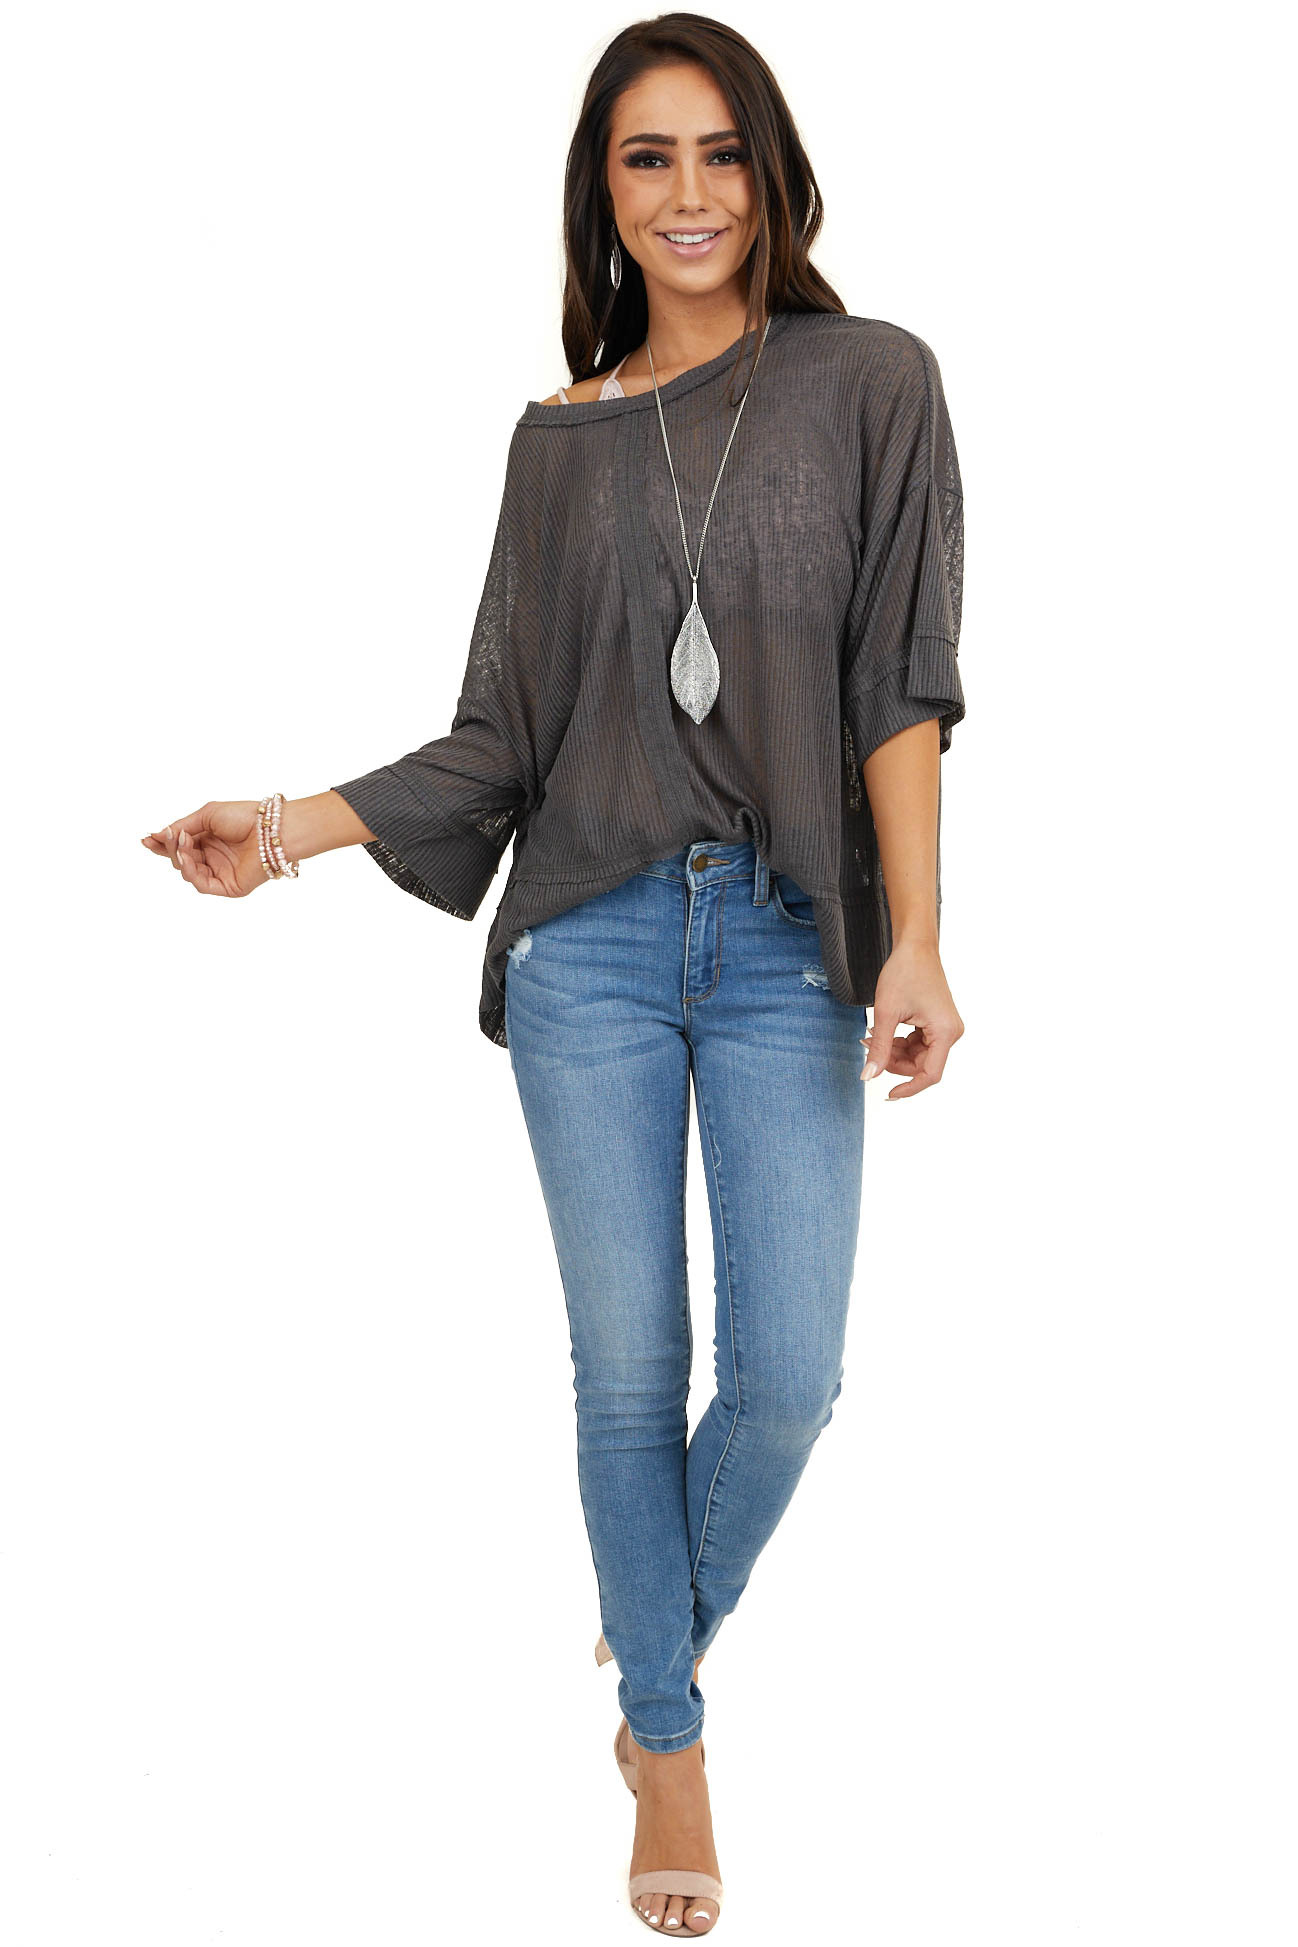 Charcoal Ribbed Knit Top with 3/4 Length Drop Sleeves